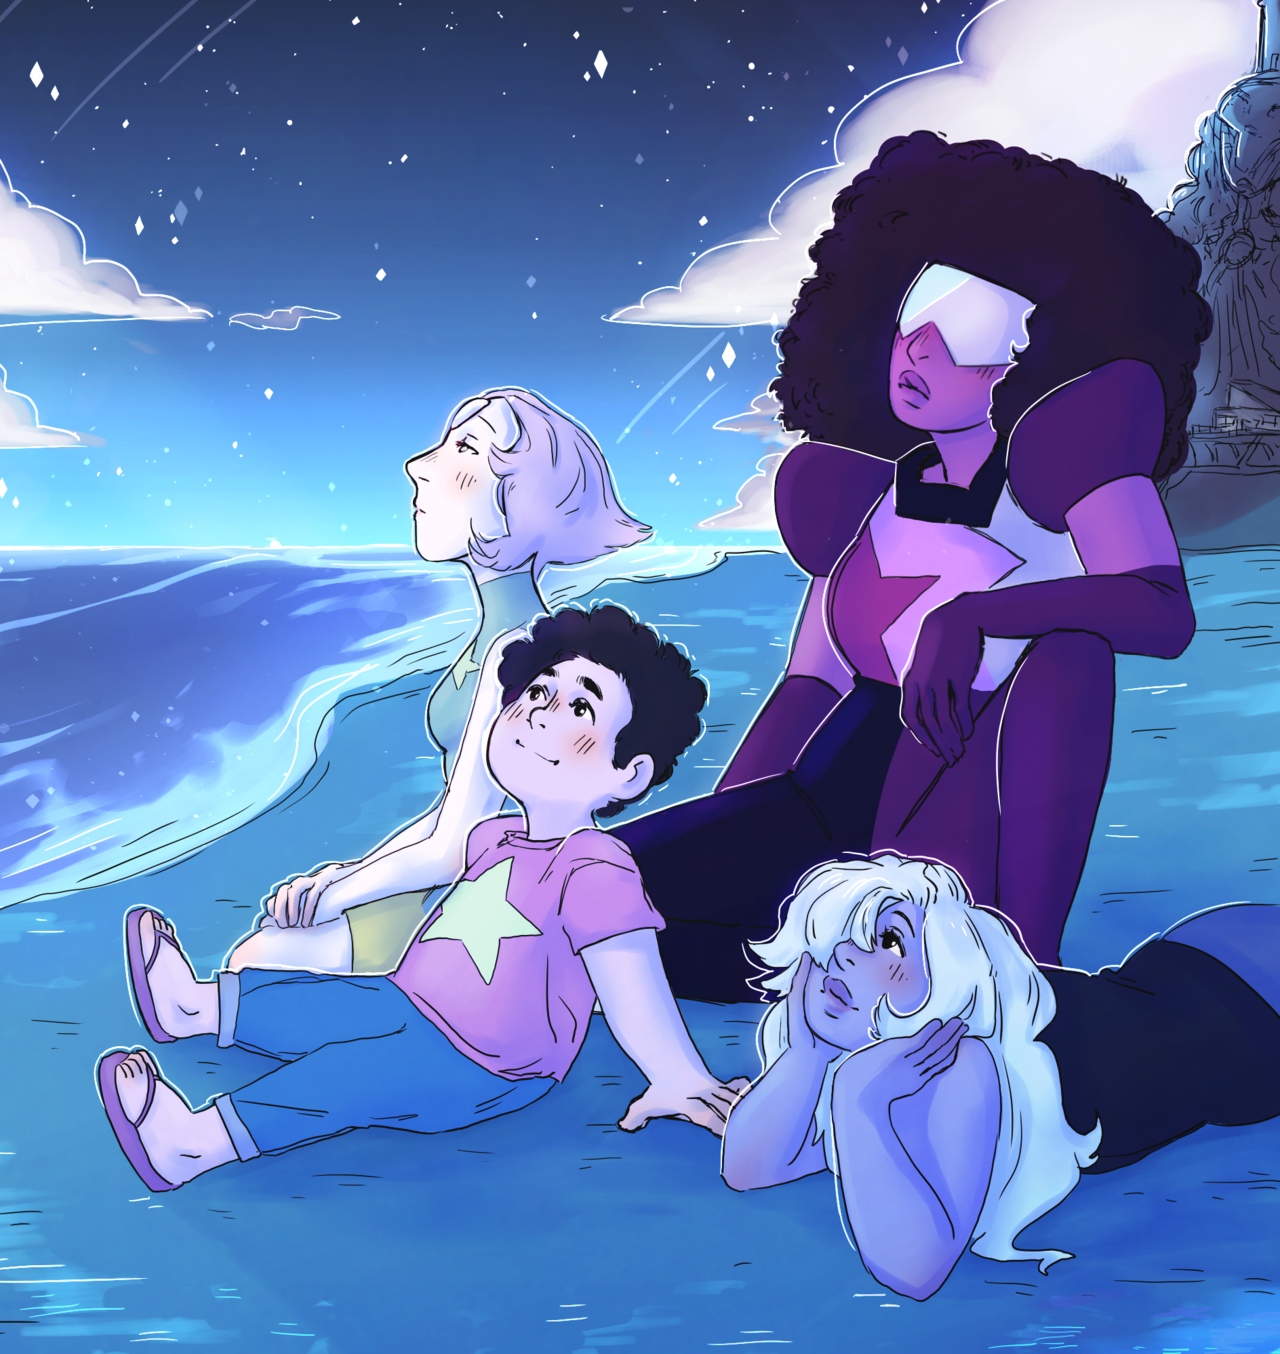 ♪That's why the people of this world believe in Garnet, Amethyst, and Pearl and Steven♪ [[MORE]]tags: @ultimate-queen-of-fandoms @hell-yeah-dan-howell @hi-disappointed-im-daughter